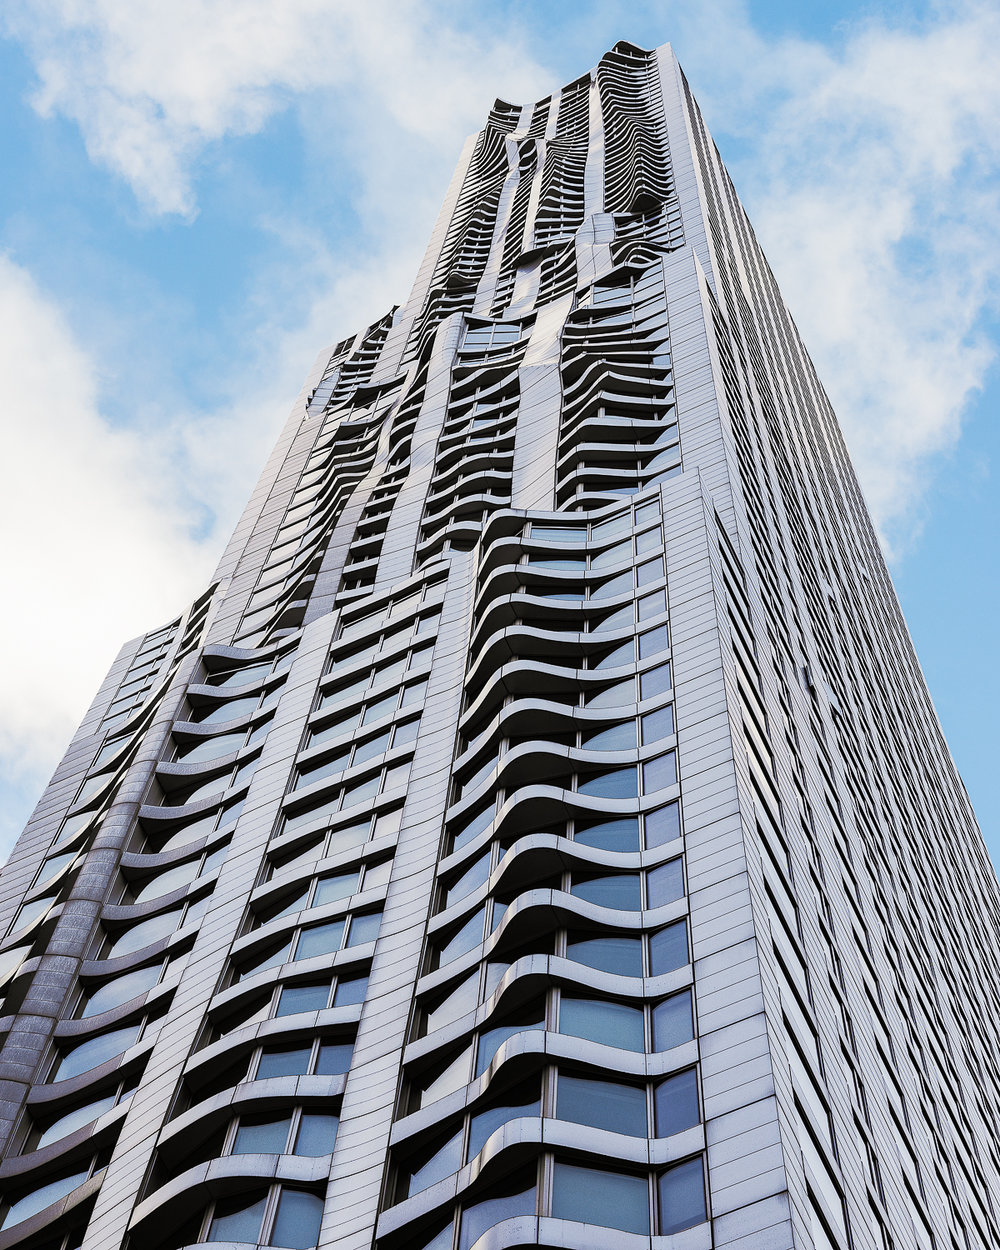 Beekman Tower - architect - Frank Gehry. Opened in 2011 as one of the tallest residential building in the world. The towers deconstructivism architecture style and stainless-steel facade undulates as if it is being blow by the wind.